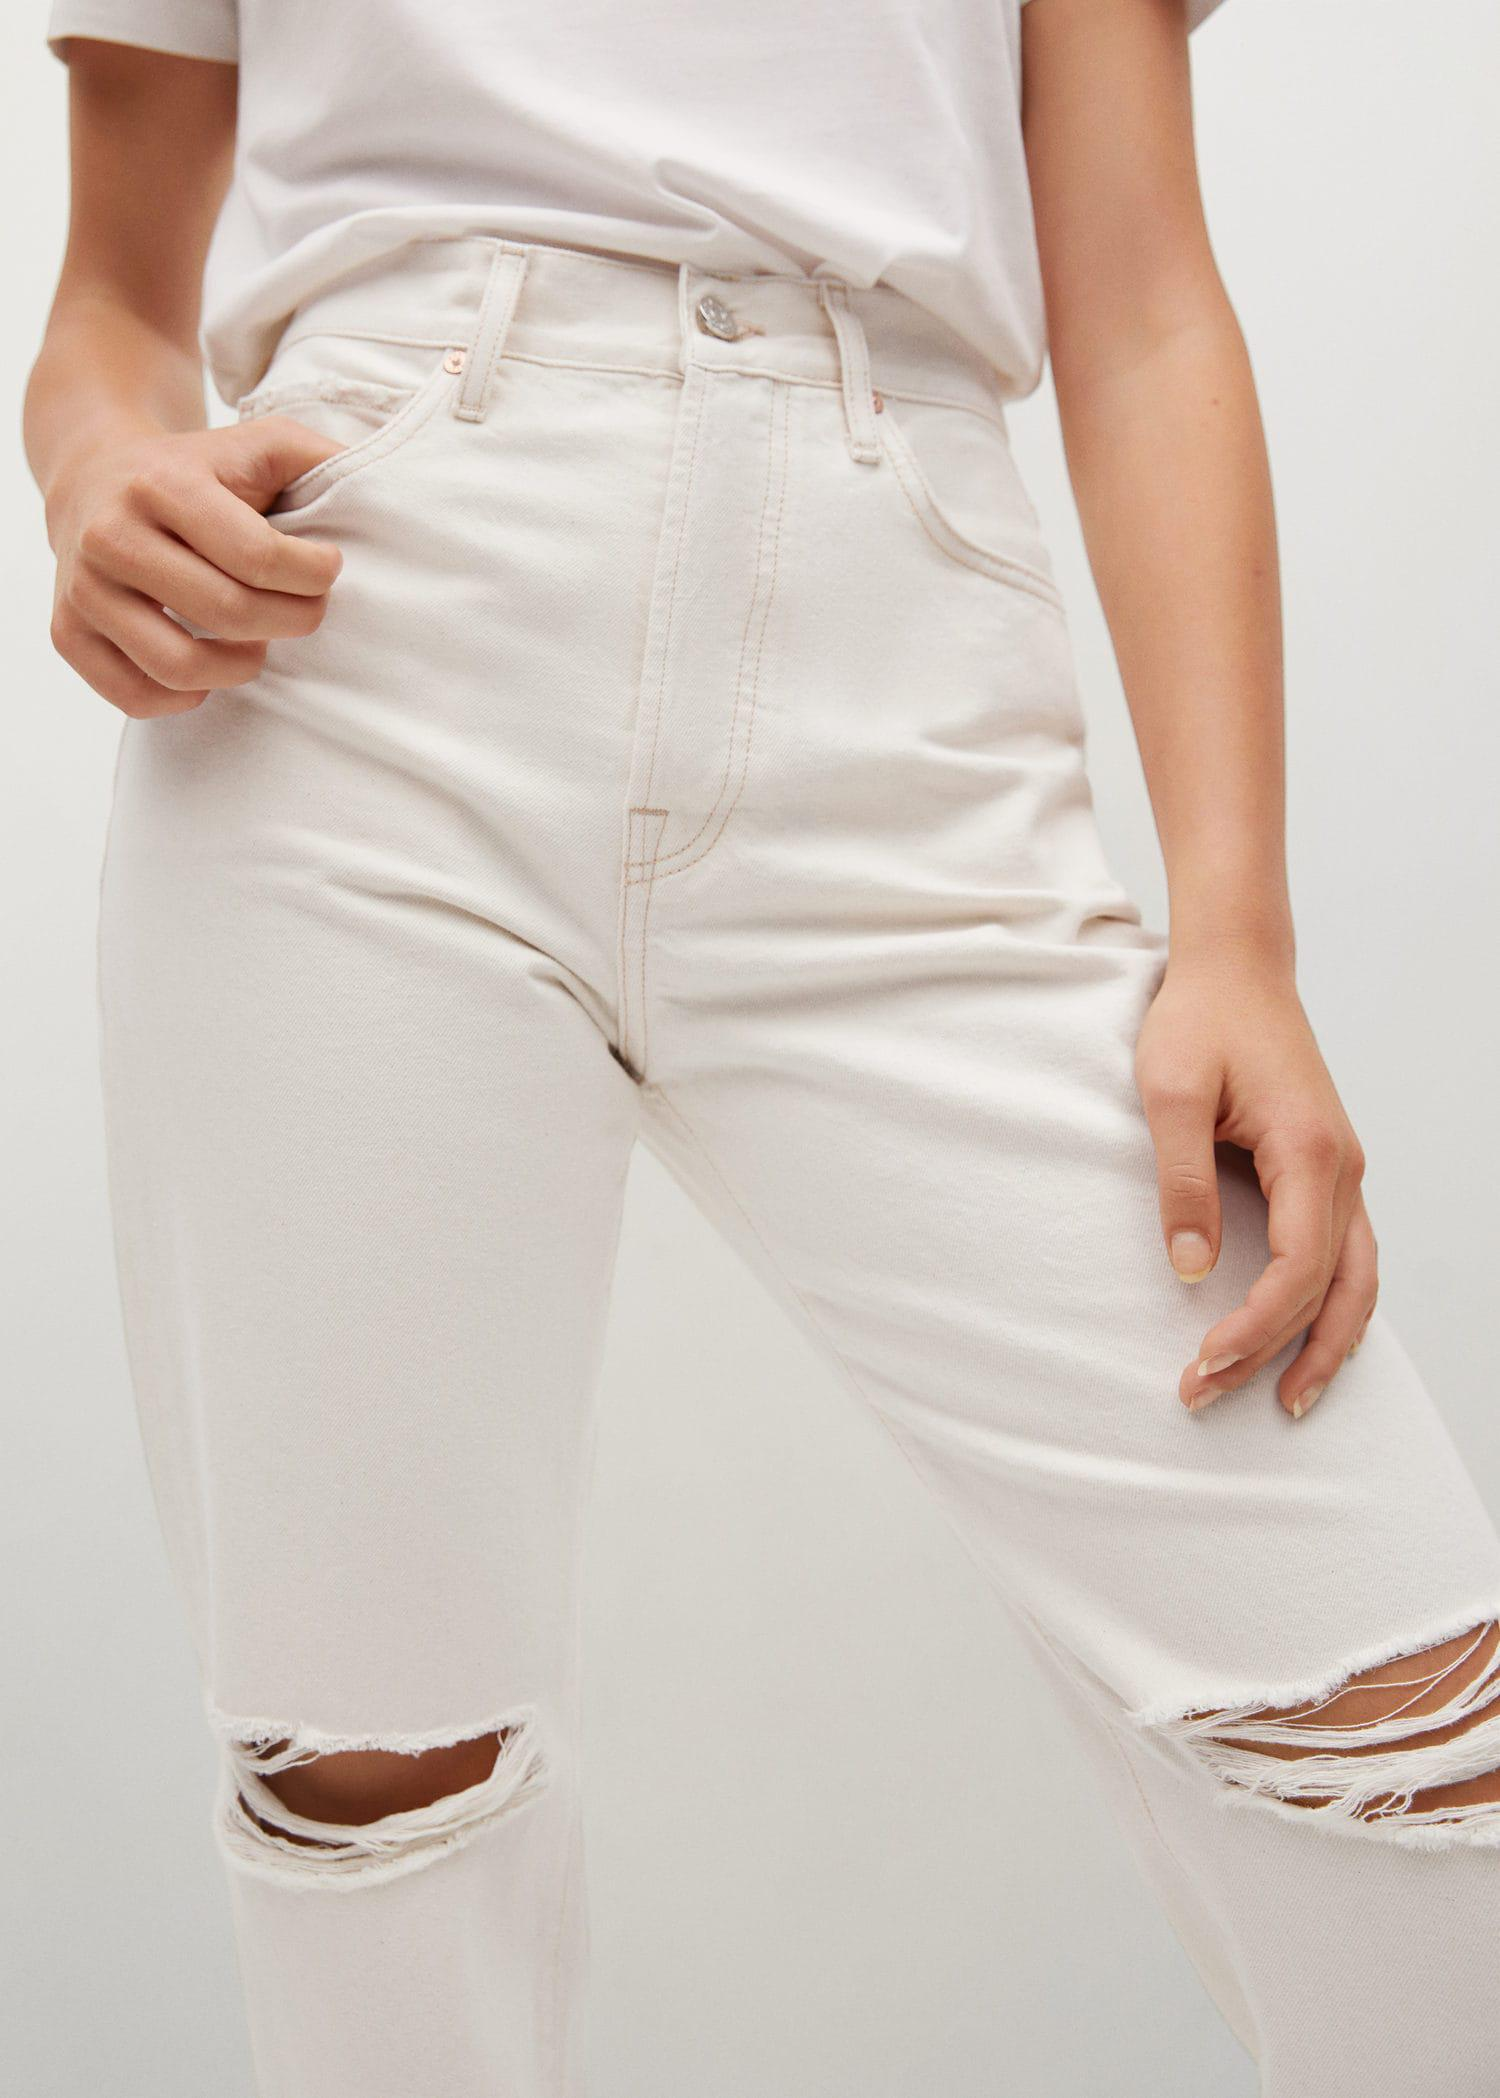 Decorative rips relaxed jeans 6